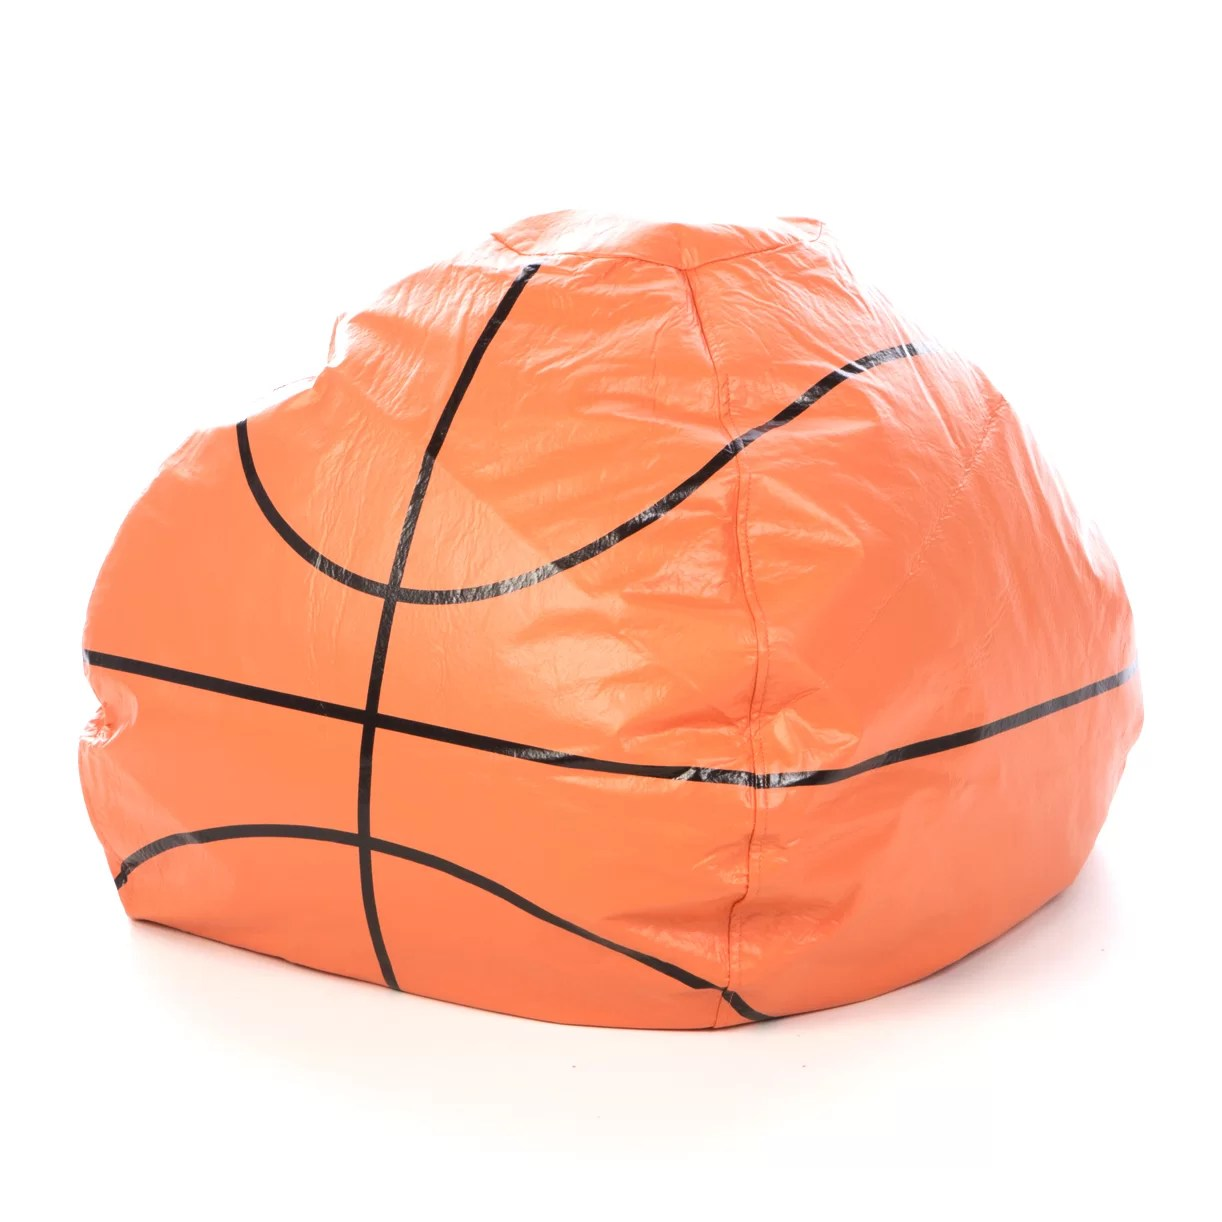 football bean bag chair cheap outdoor table and chairs basketball home decor